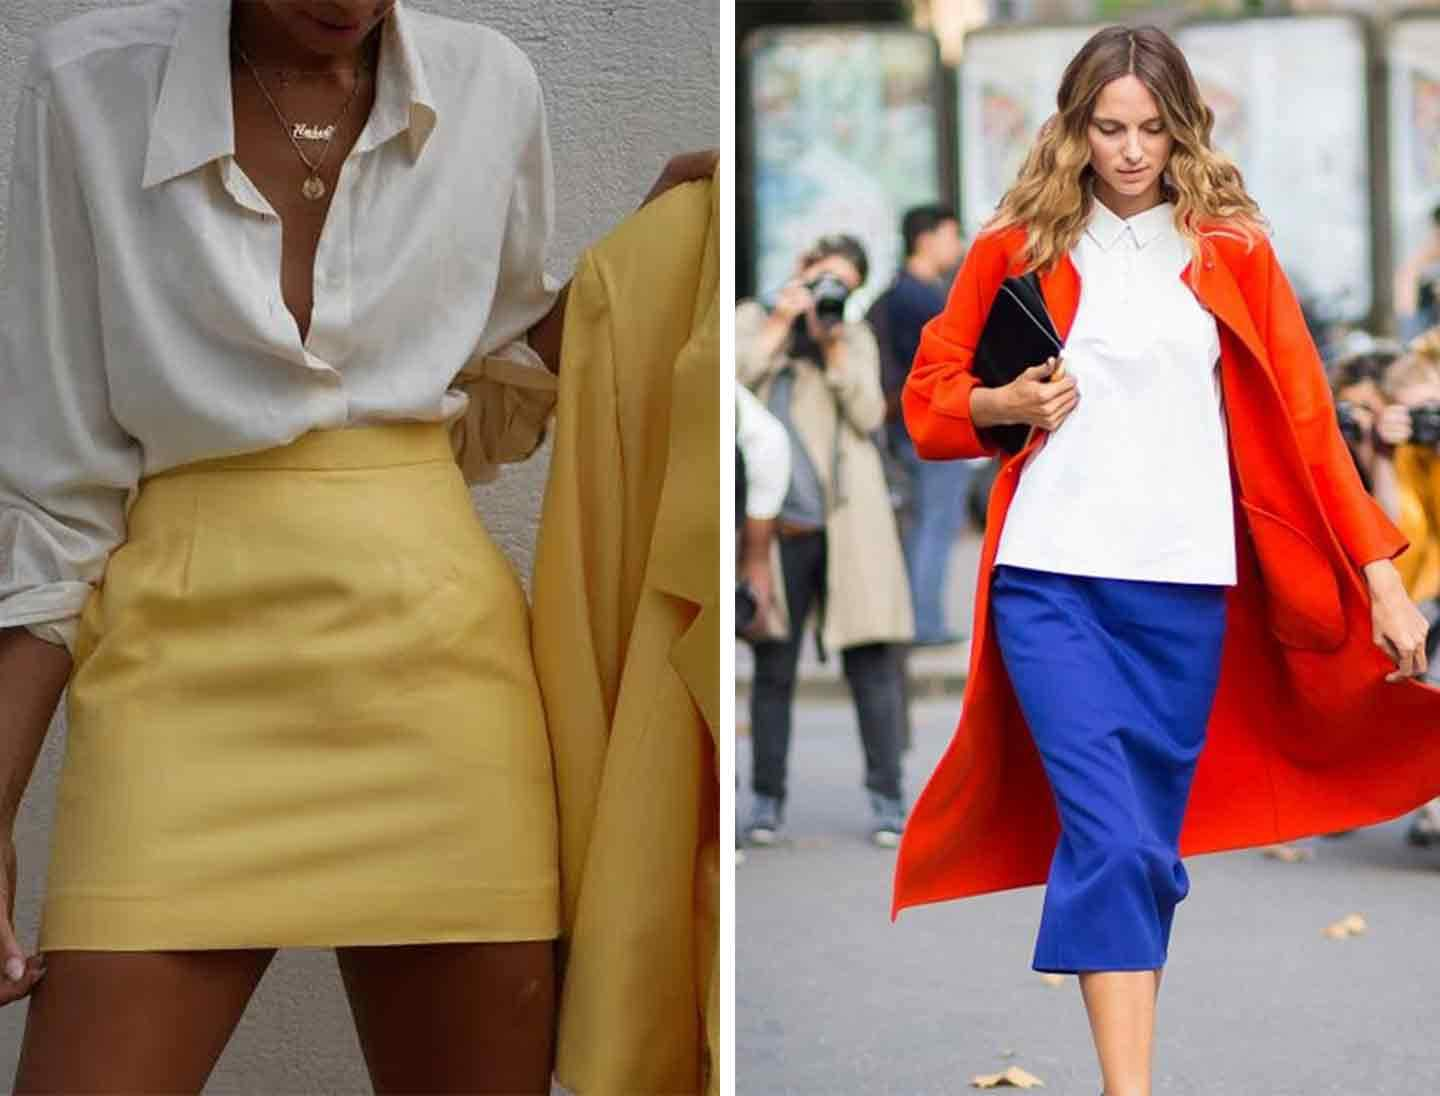 two images of woman wearing white shirts with colourful skirts